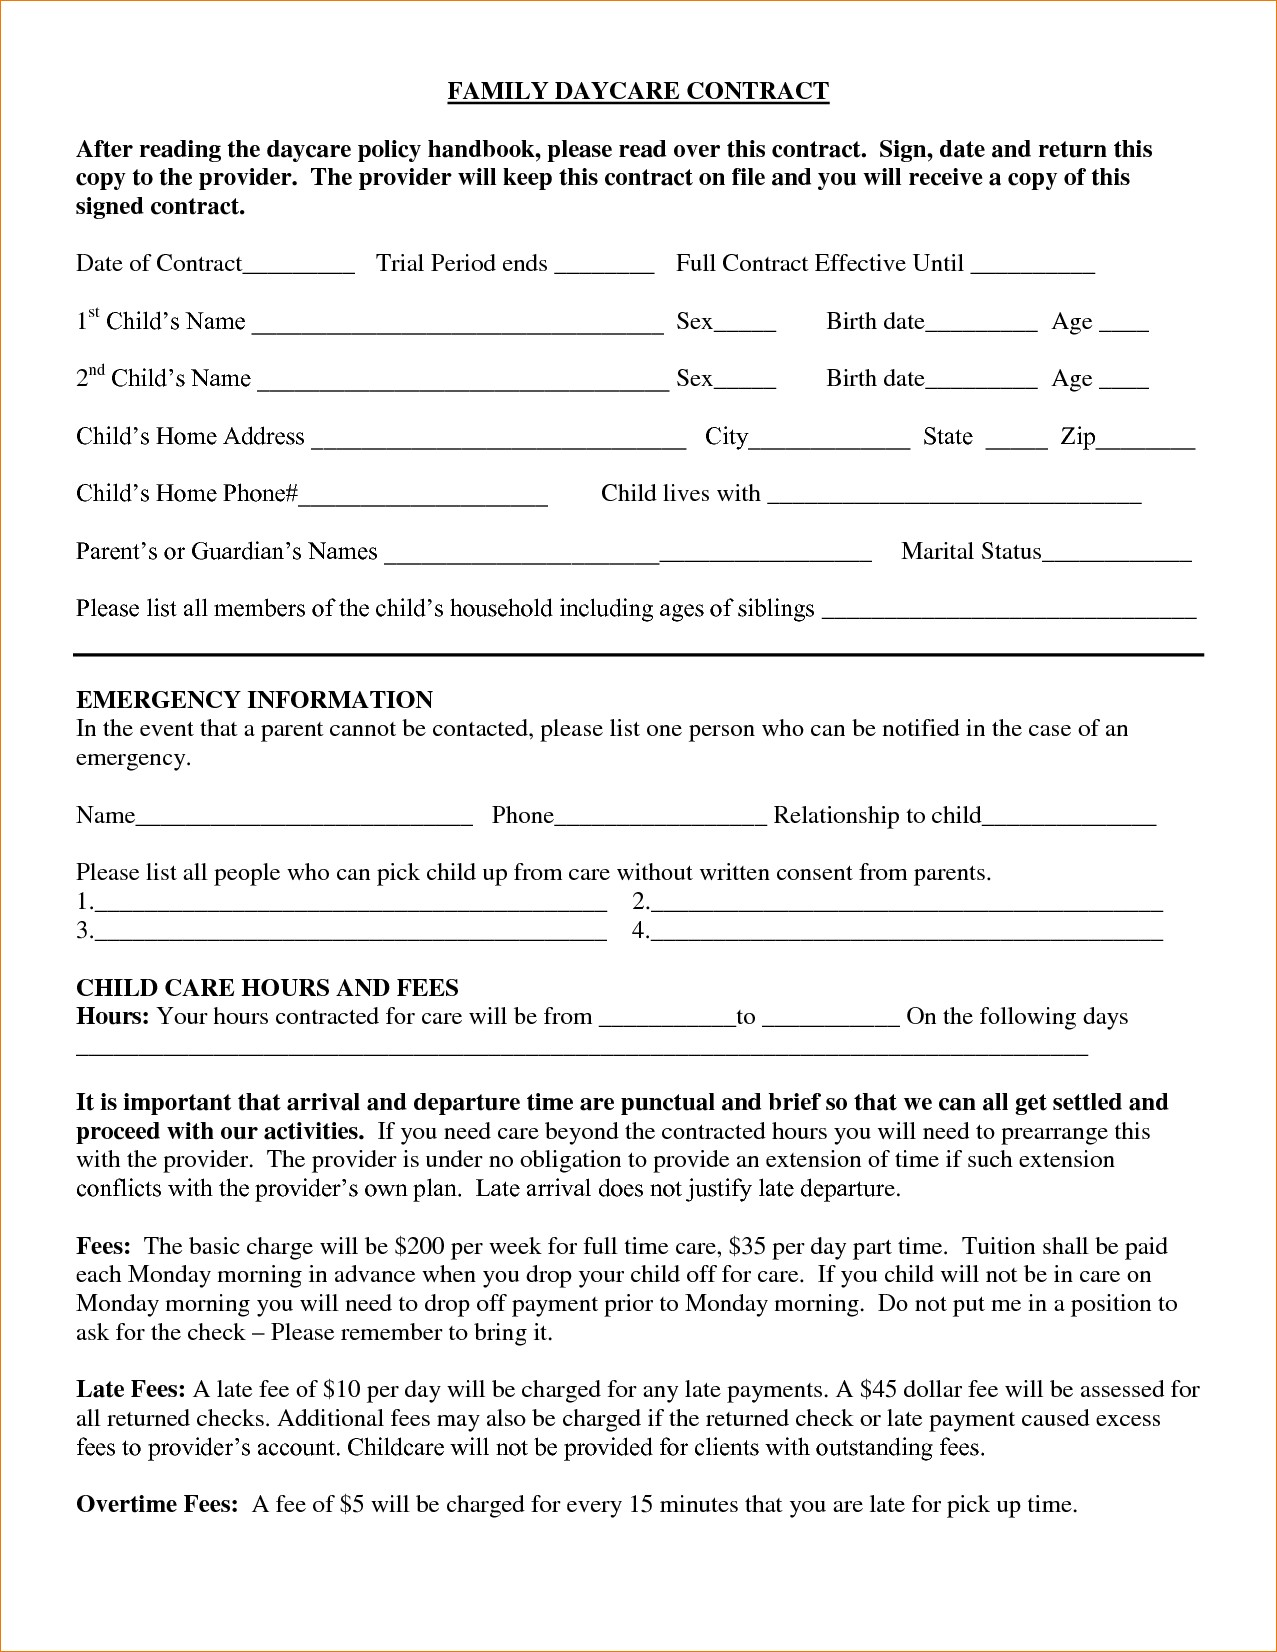 Sample Daycare Tax Forms For Parents